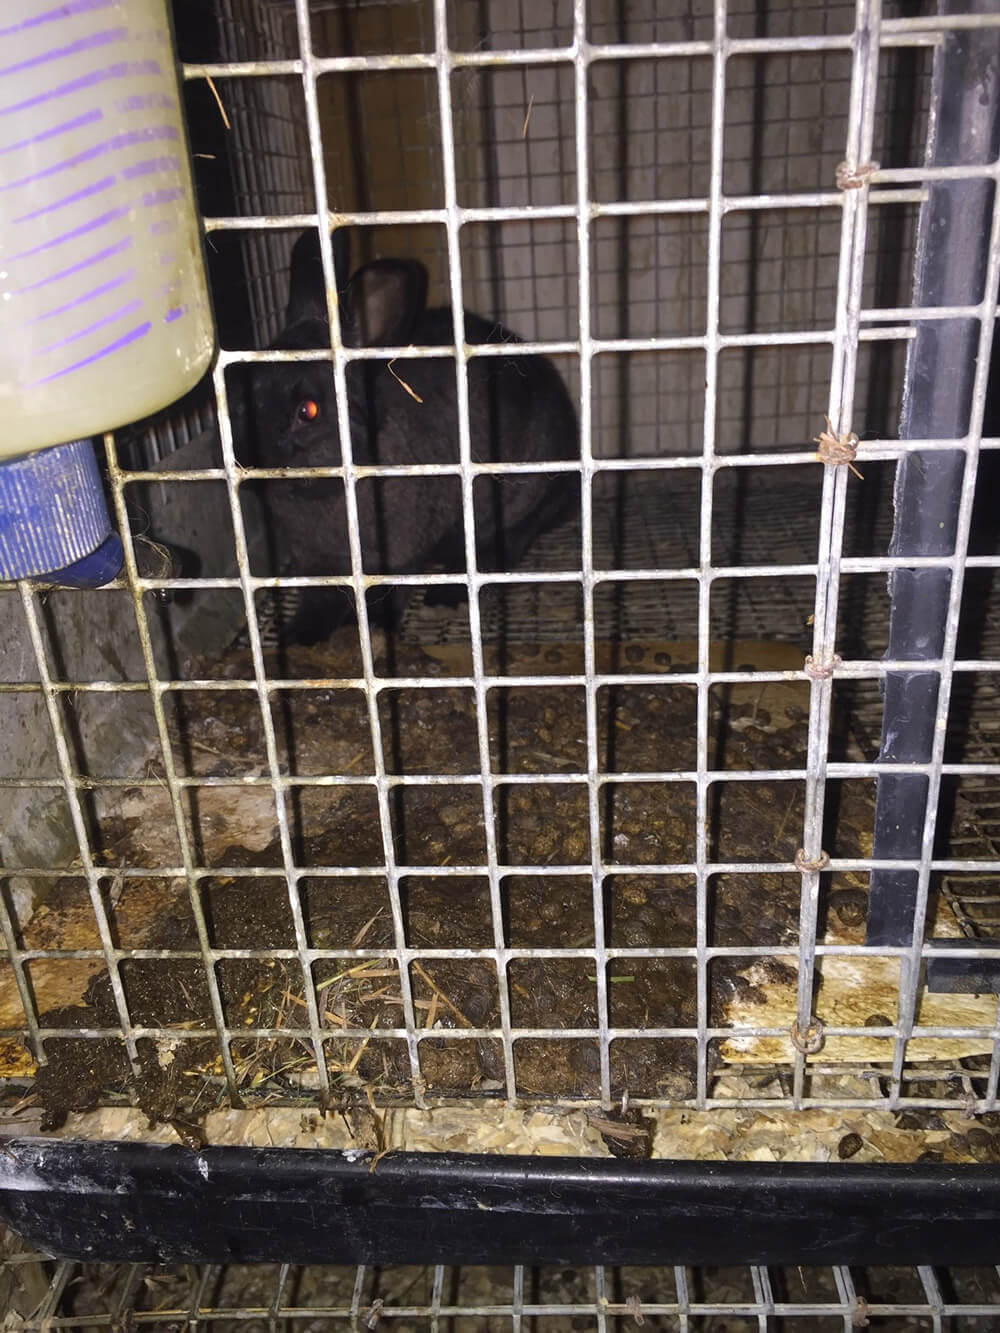 This Rabbit Was Caged Alone—with A Pile Of Feces Measuring Approximately 25  Square Inches—in One Of Several Buildings That Reeked Of Animal Waste